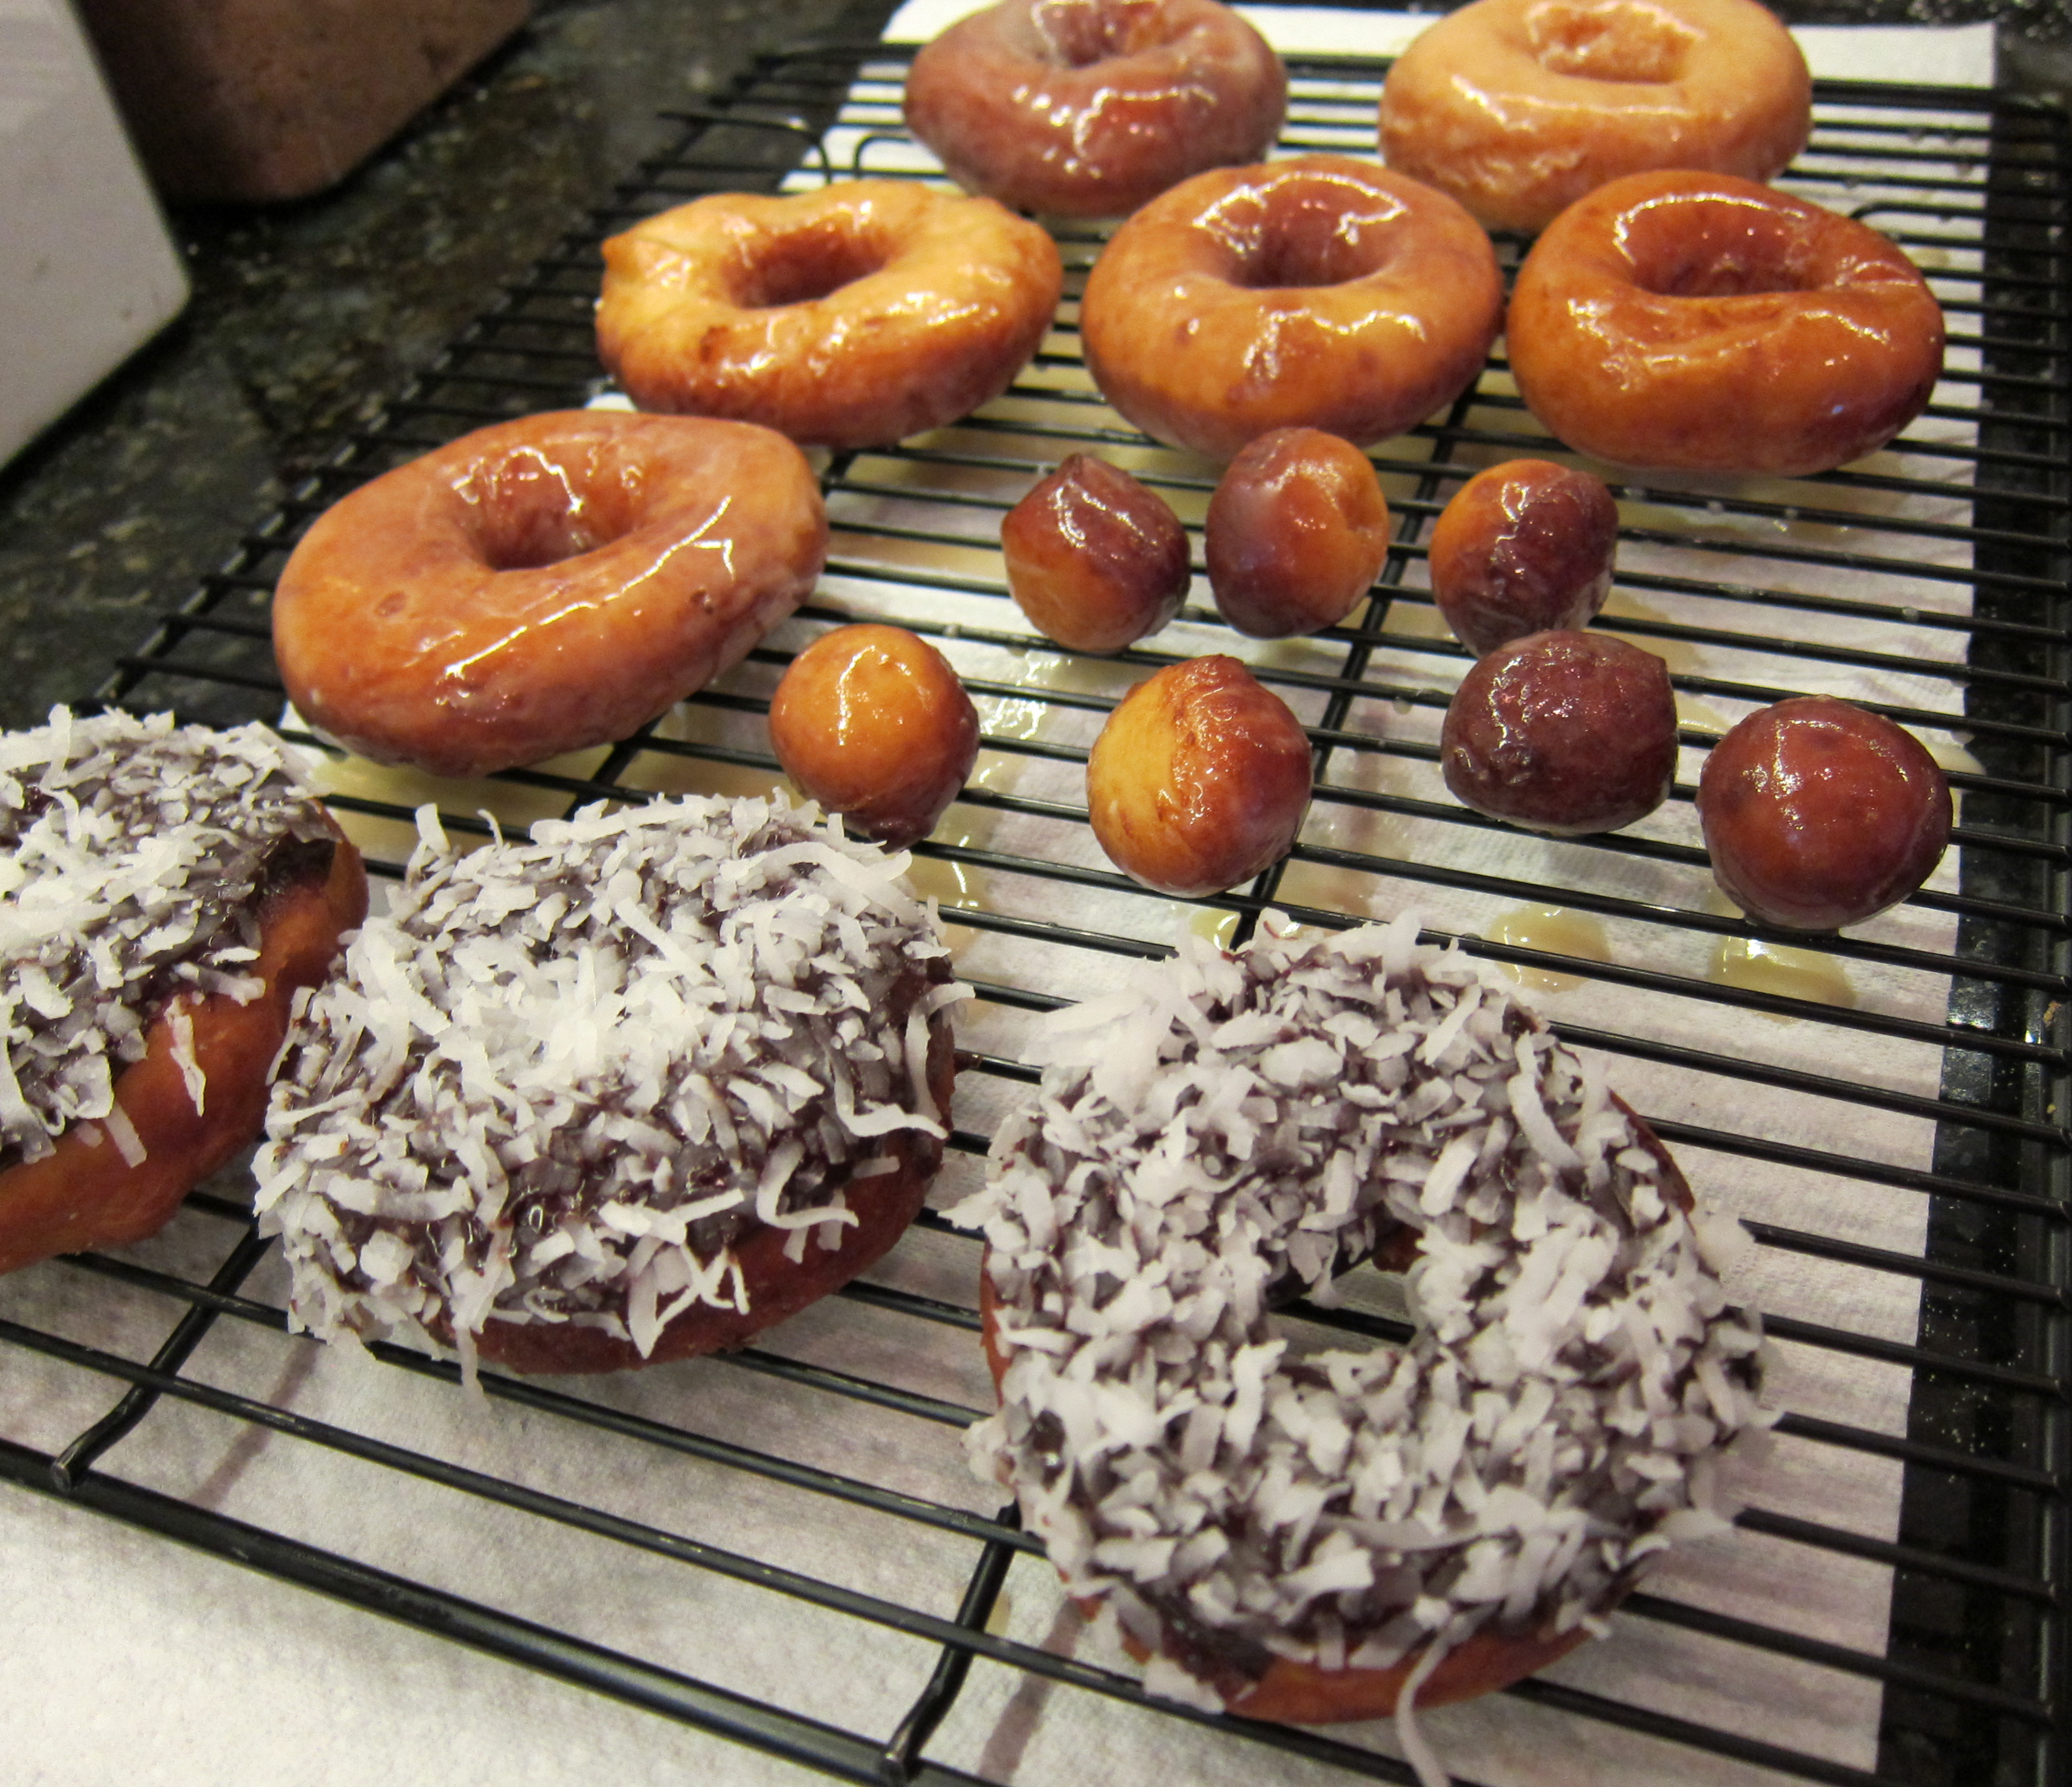 fresh homemade donuts on the baking rack